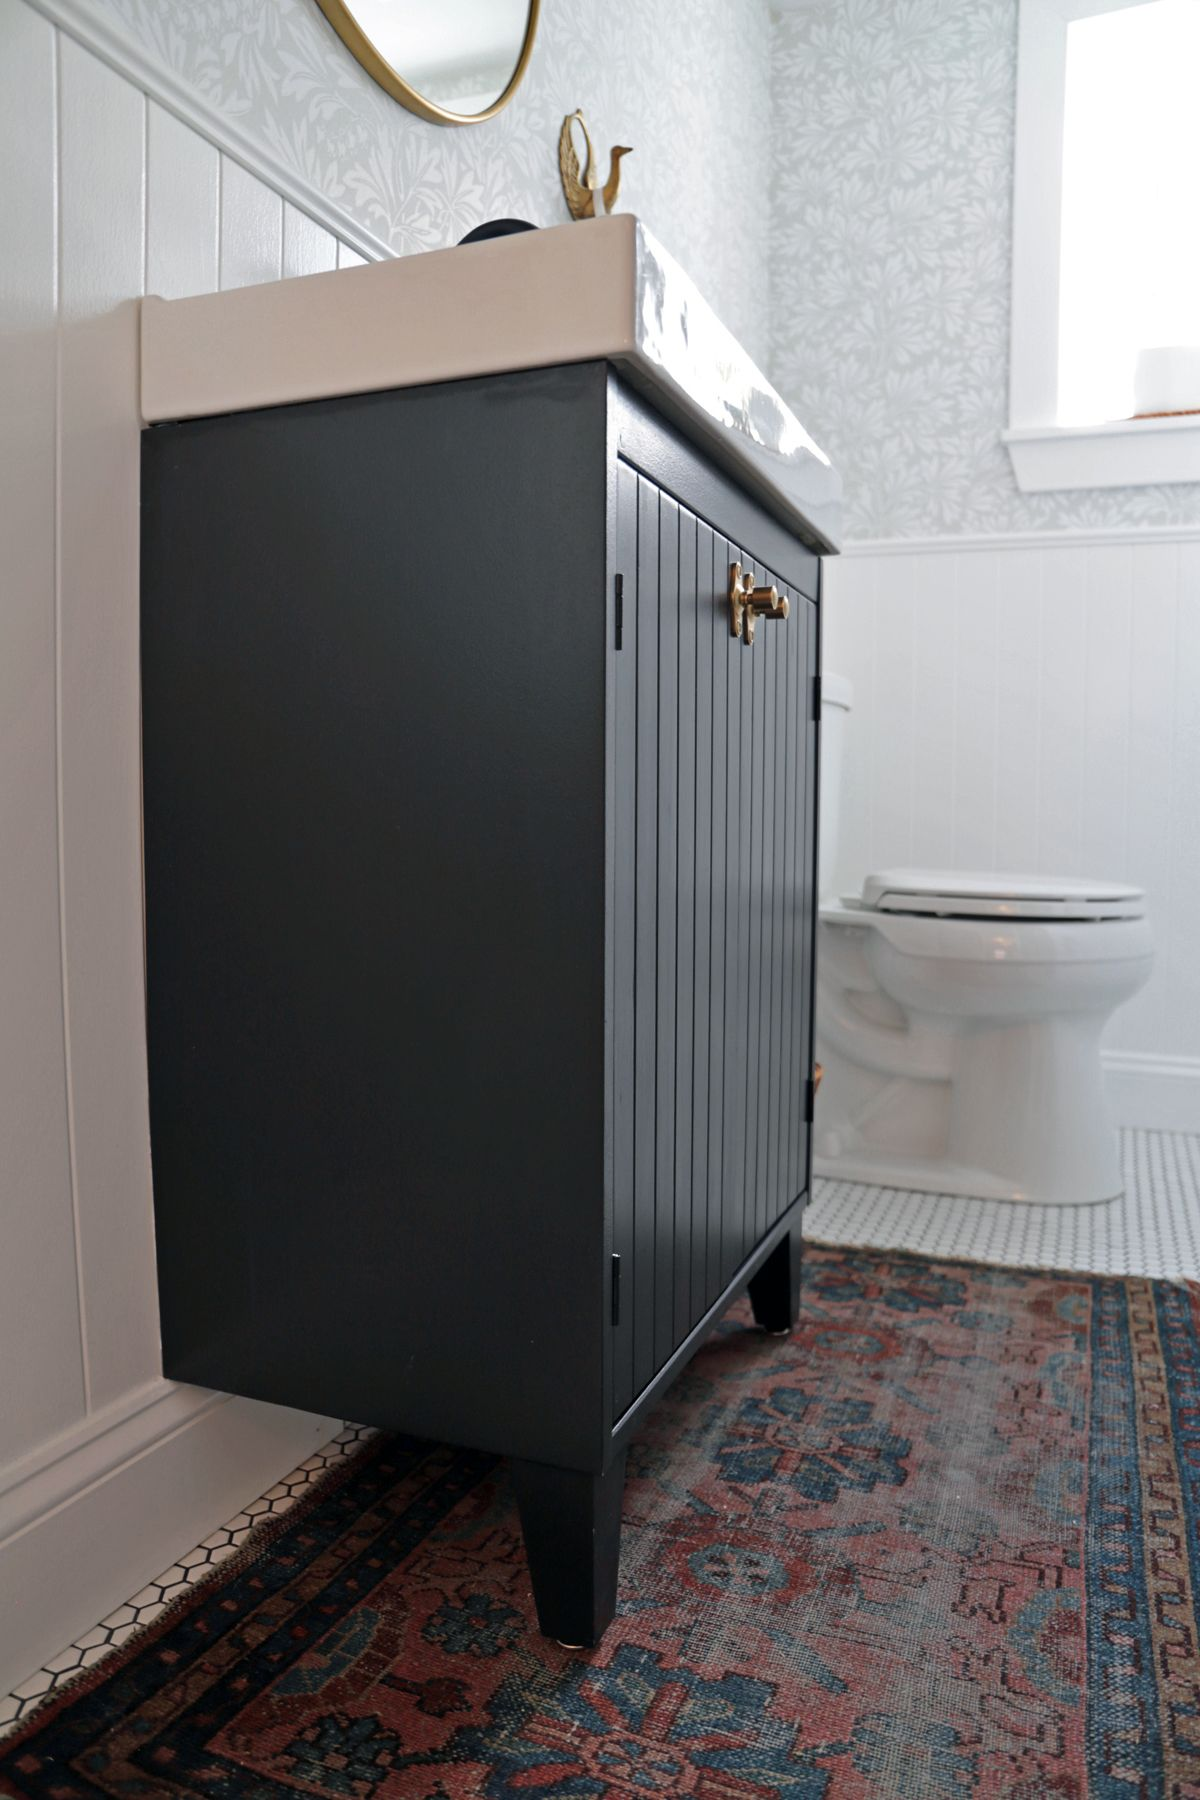 Statement Vanities Are A Very Big Thing In Bathrooms Right Now